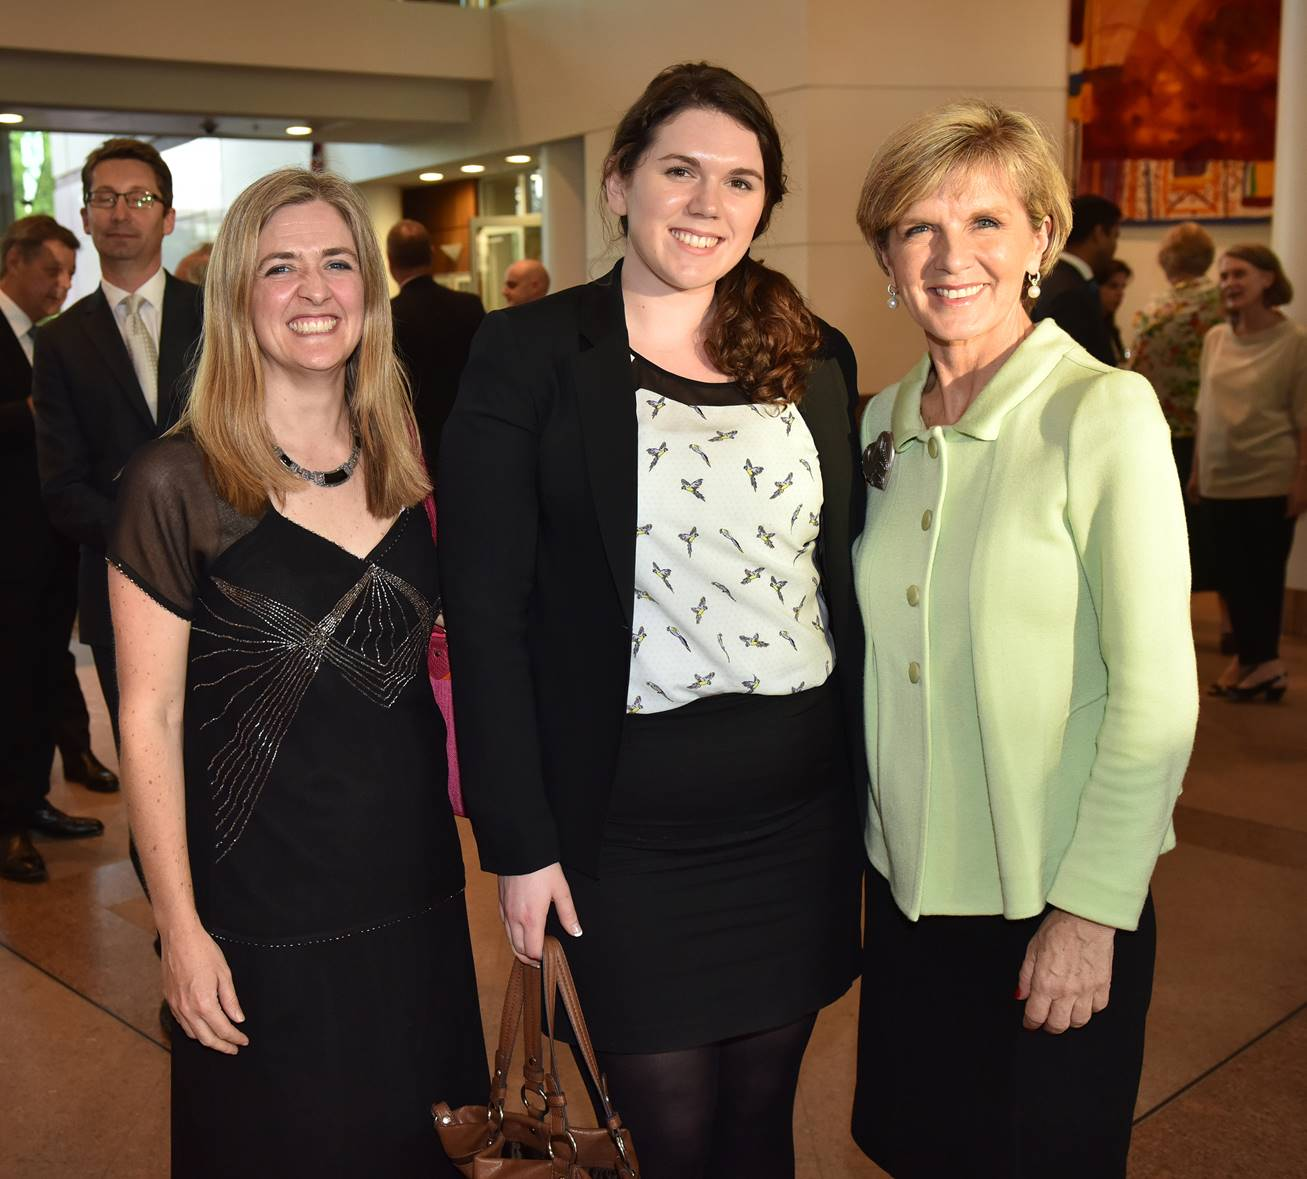 Intern attending a function at Parliament House, Canberra 2011